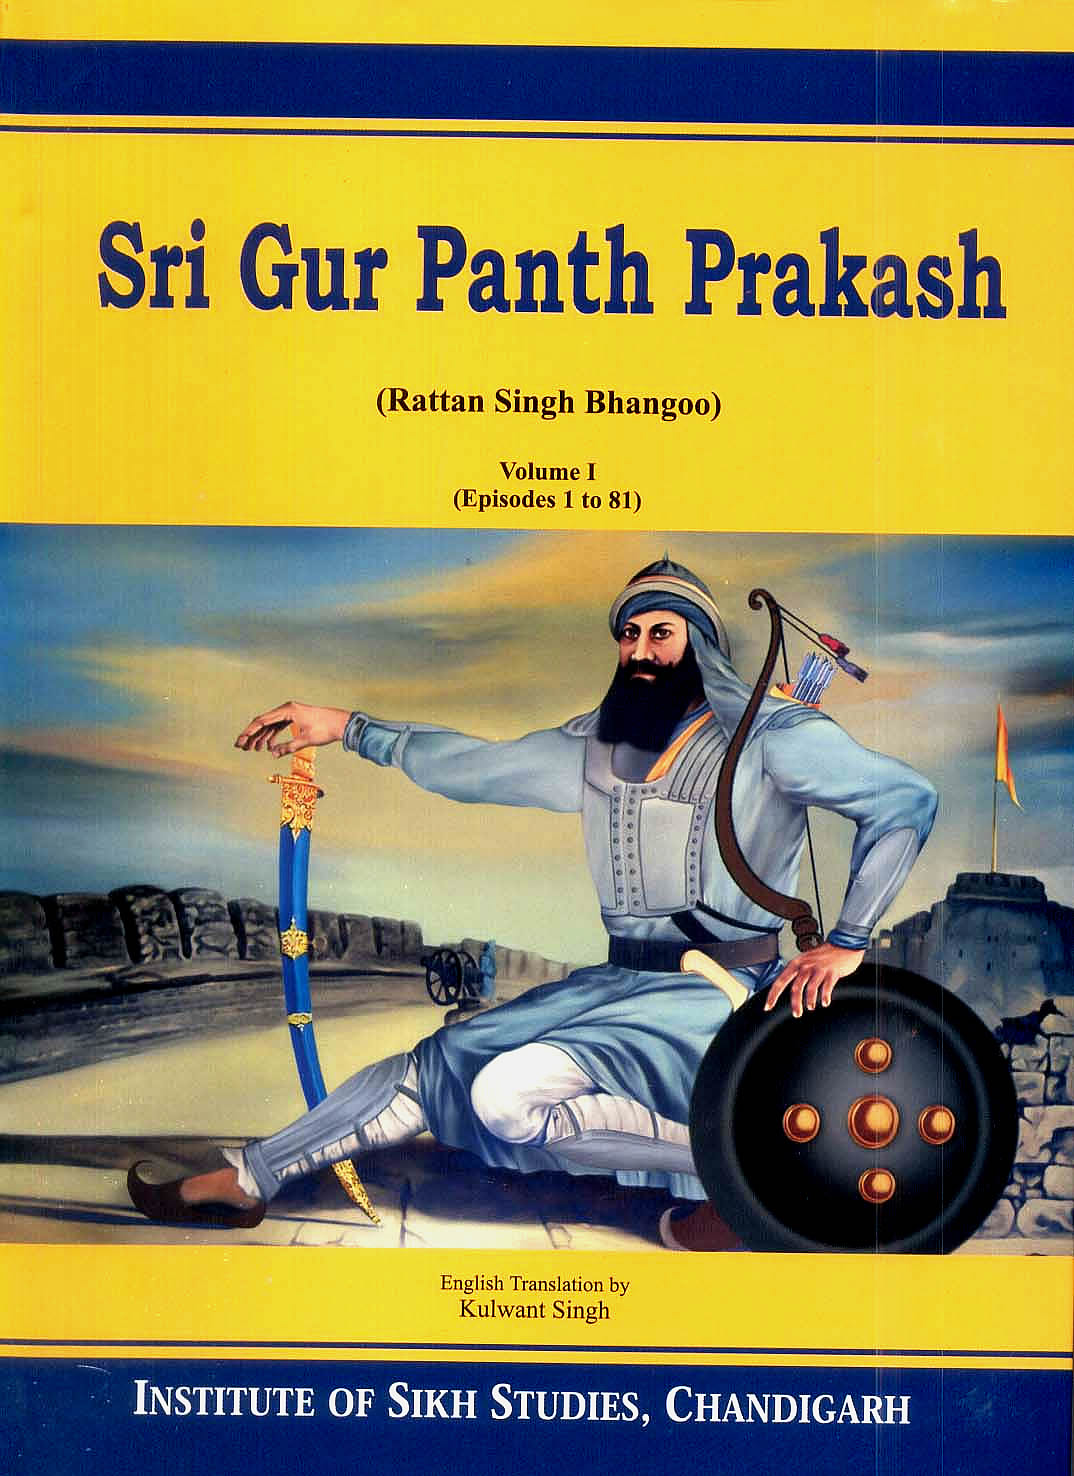 Gur Panth Parkash